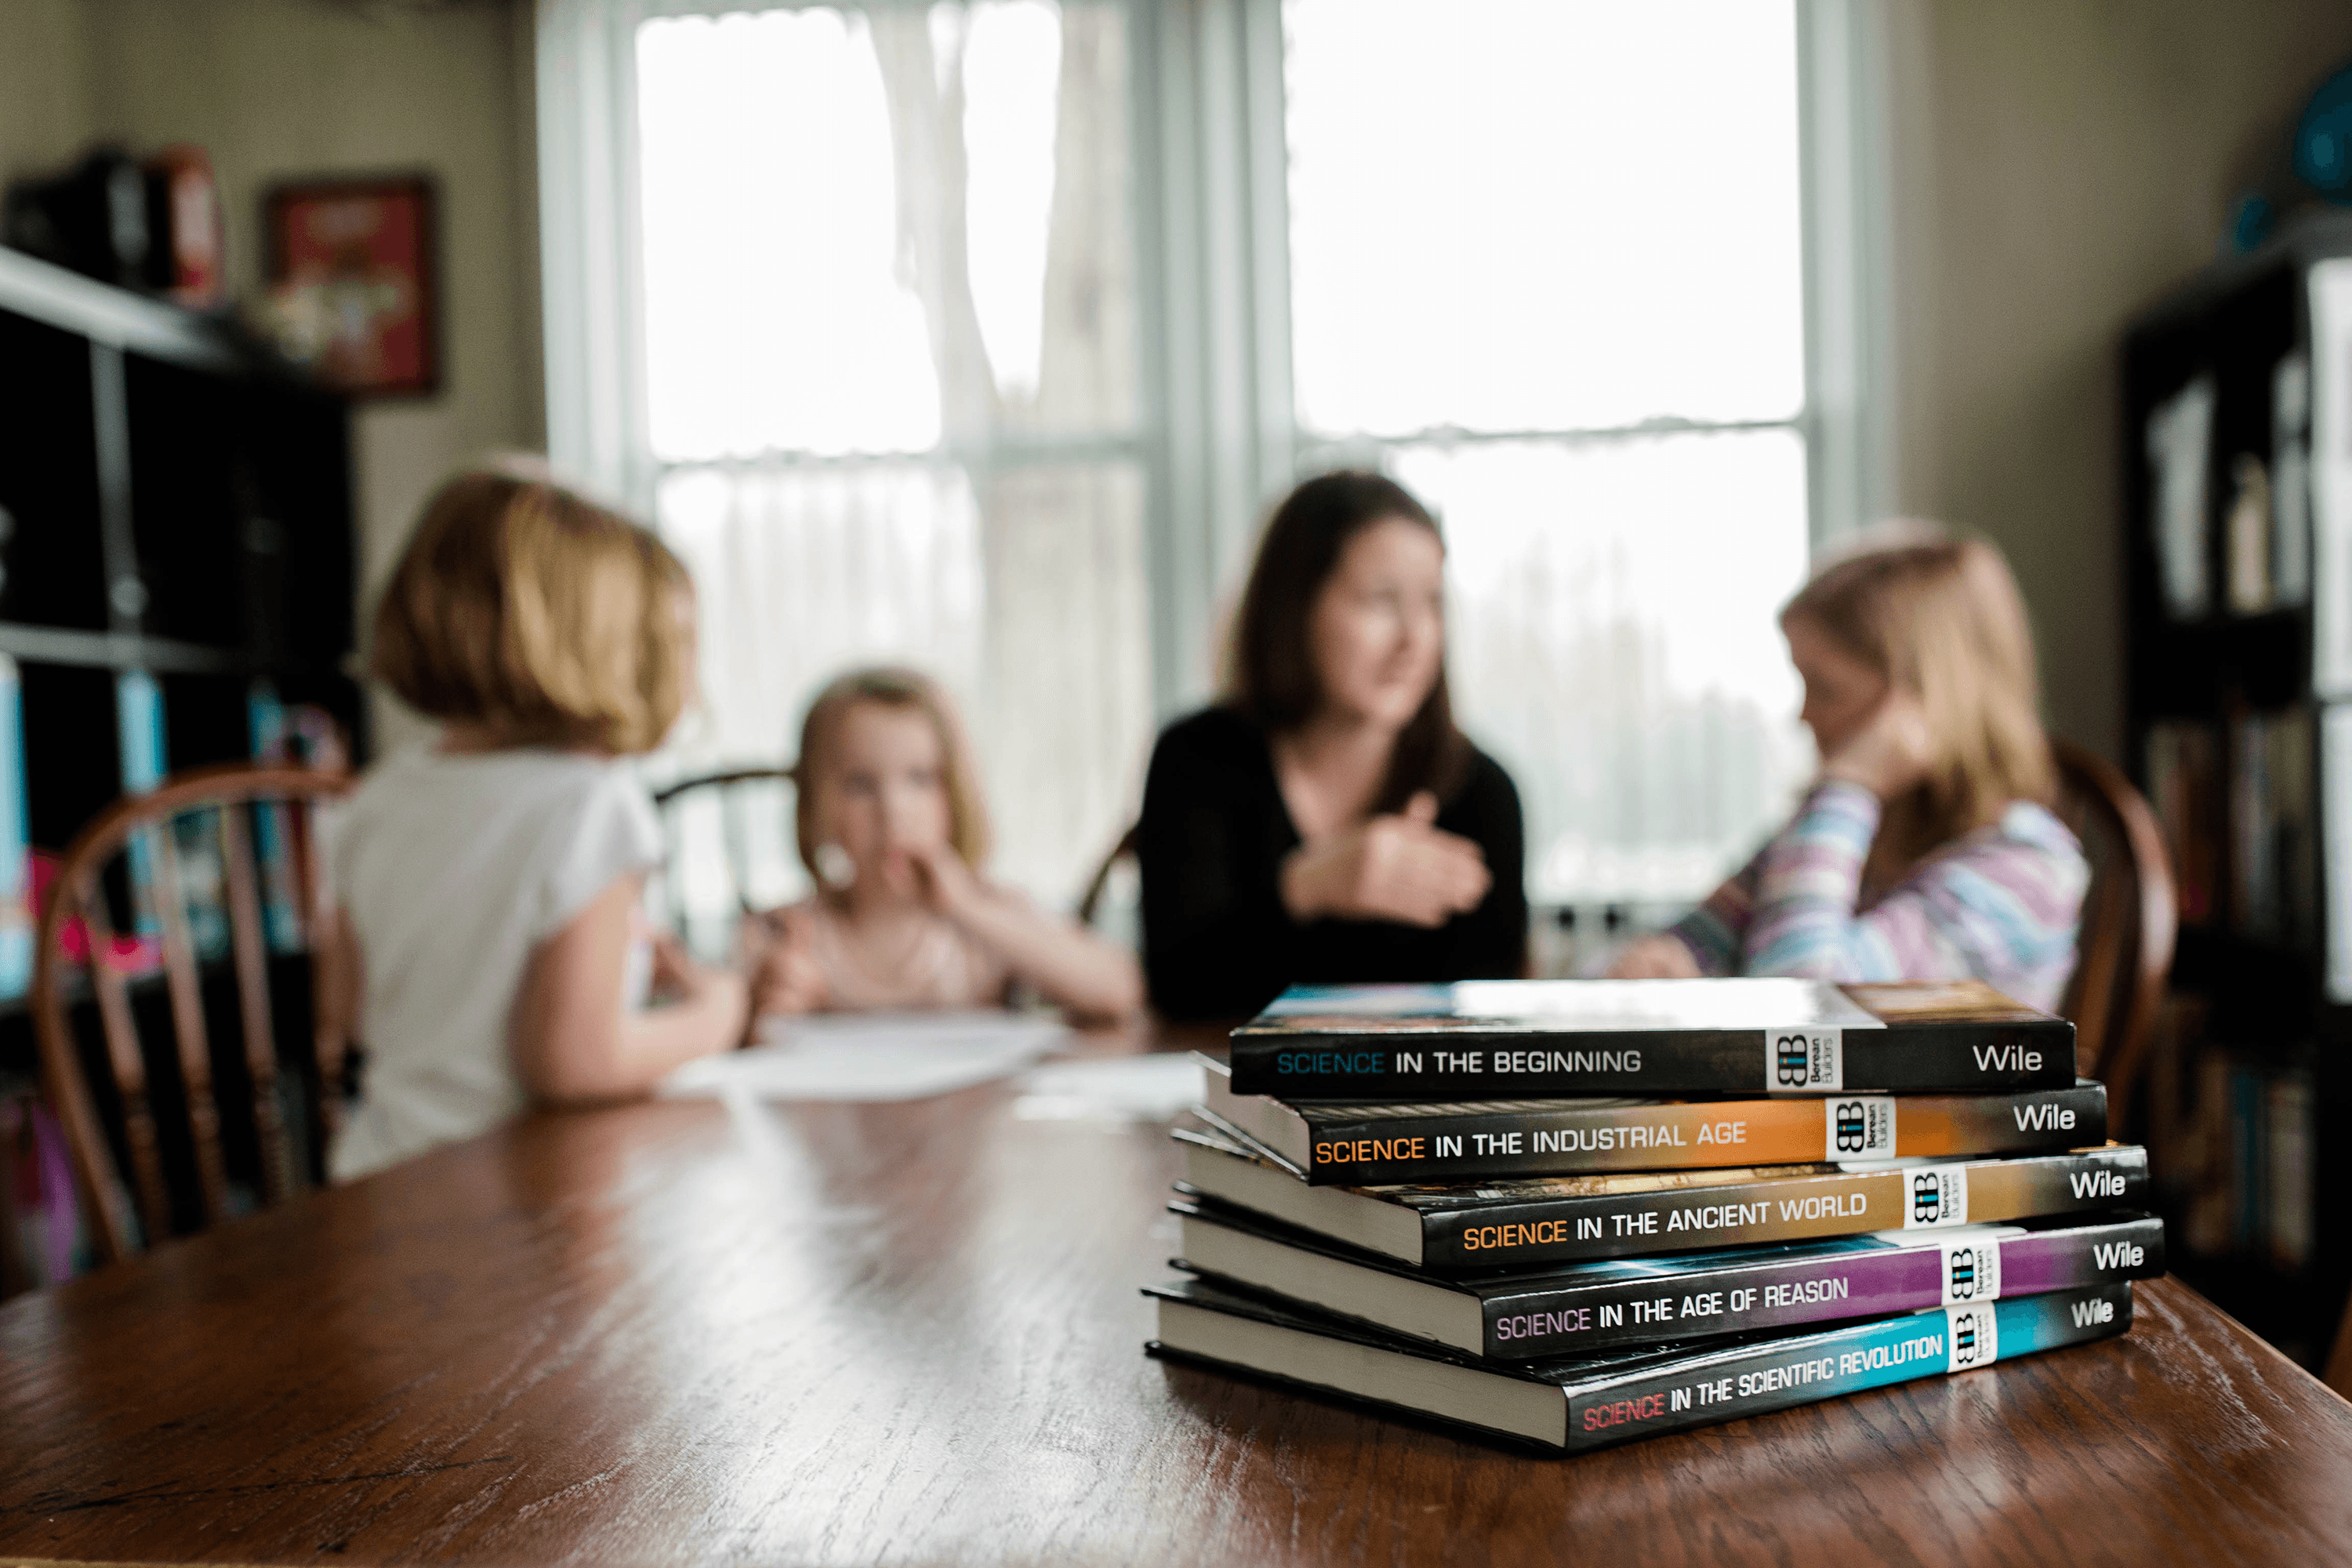 A stack of Berean Builders Elementary courses sits atop a dining table in the foreground while a mother speaks with her daughters around the table in the background